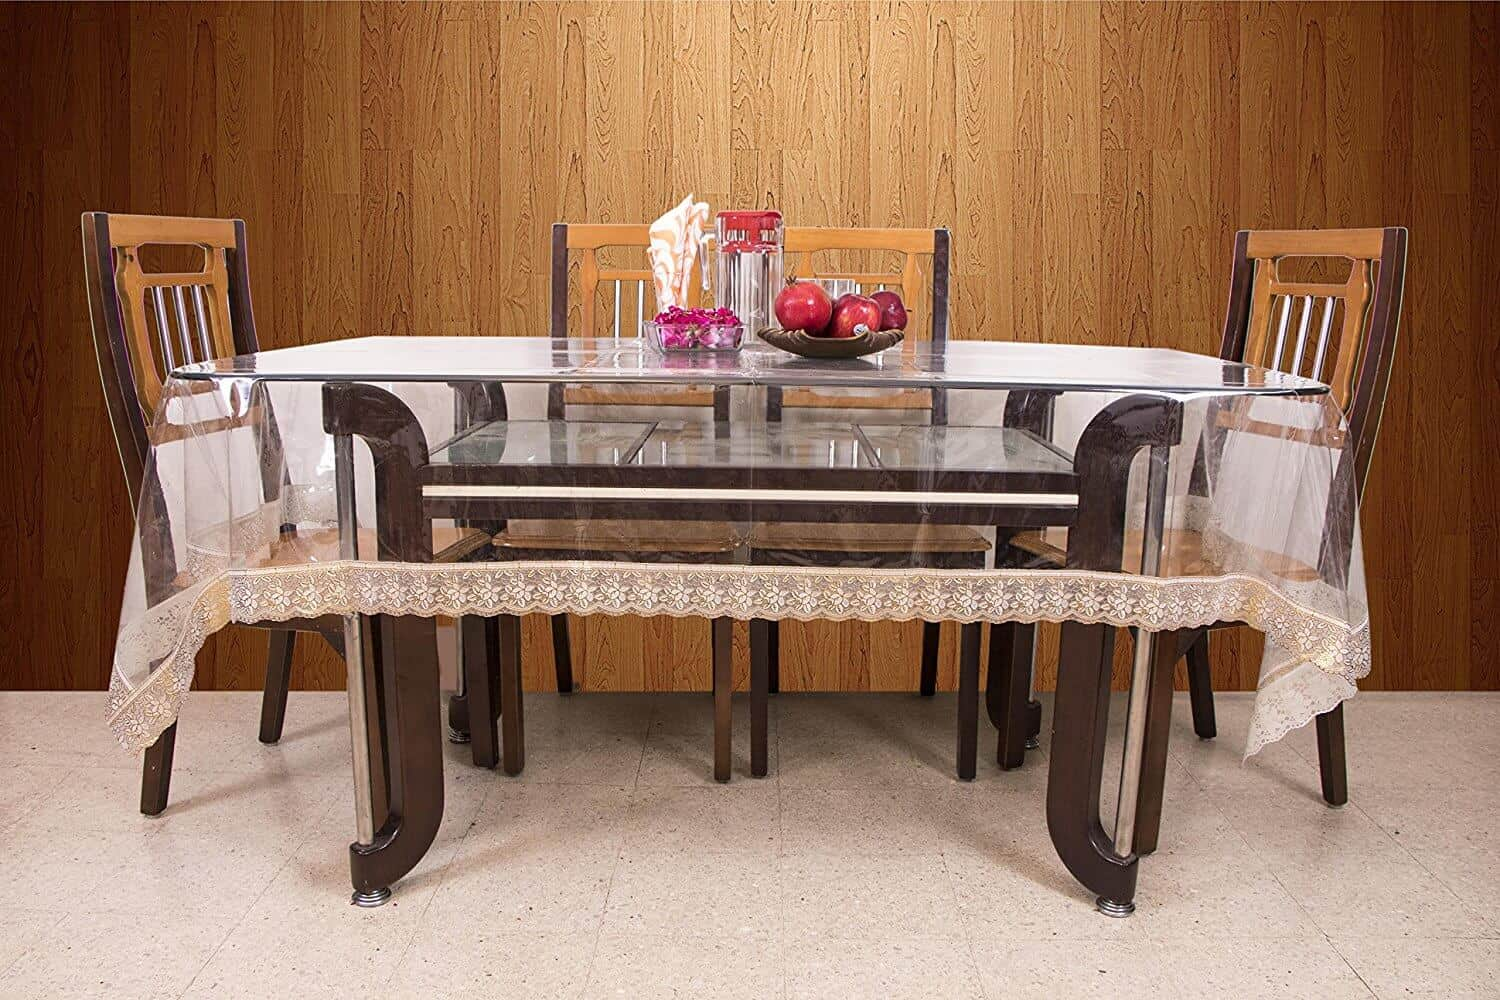 Most Beautiful And Mesmerizing Dining Table Design Ideas